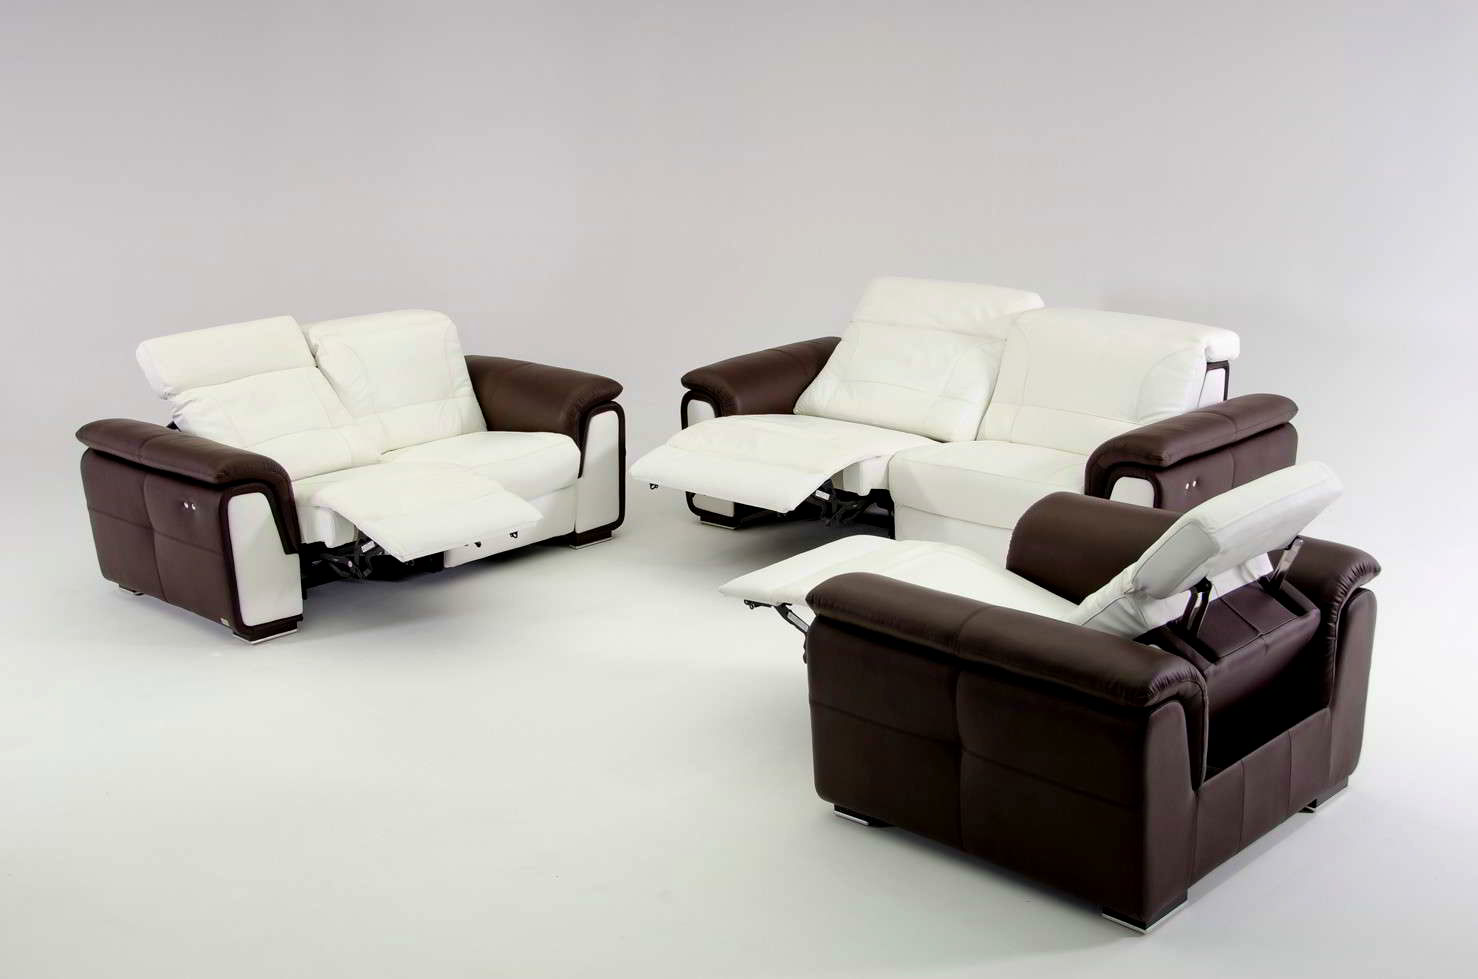 Buy Sofa Bed Online Best Cheap Sofa Beds Plan Modern Sofa Design Ideas Modern Sofa